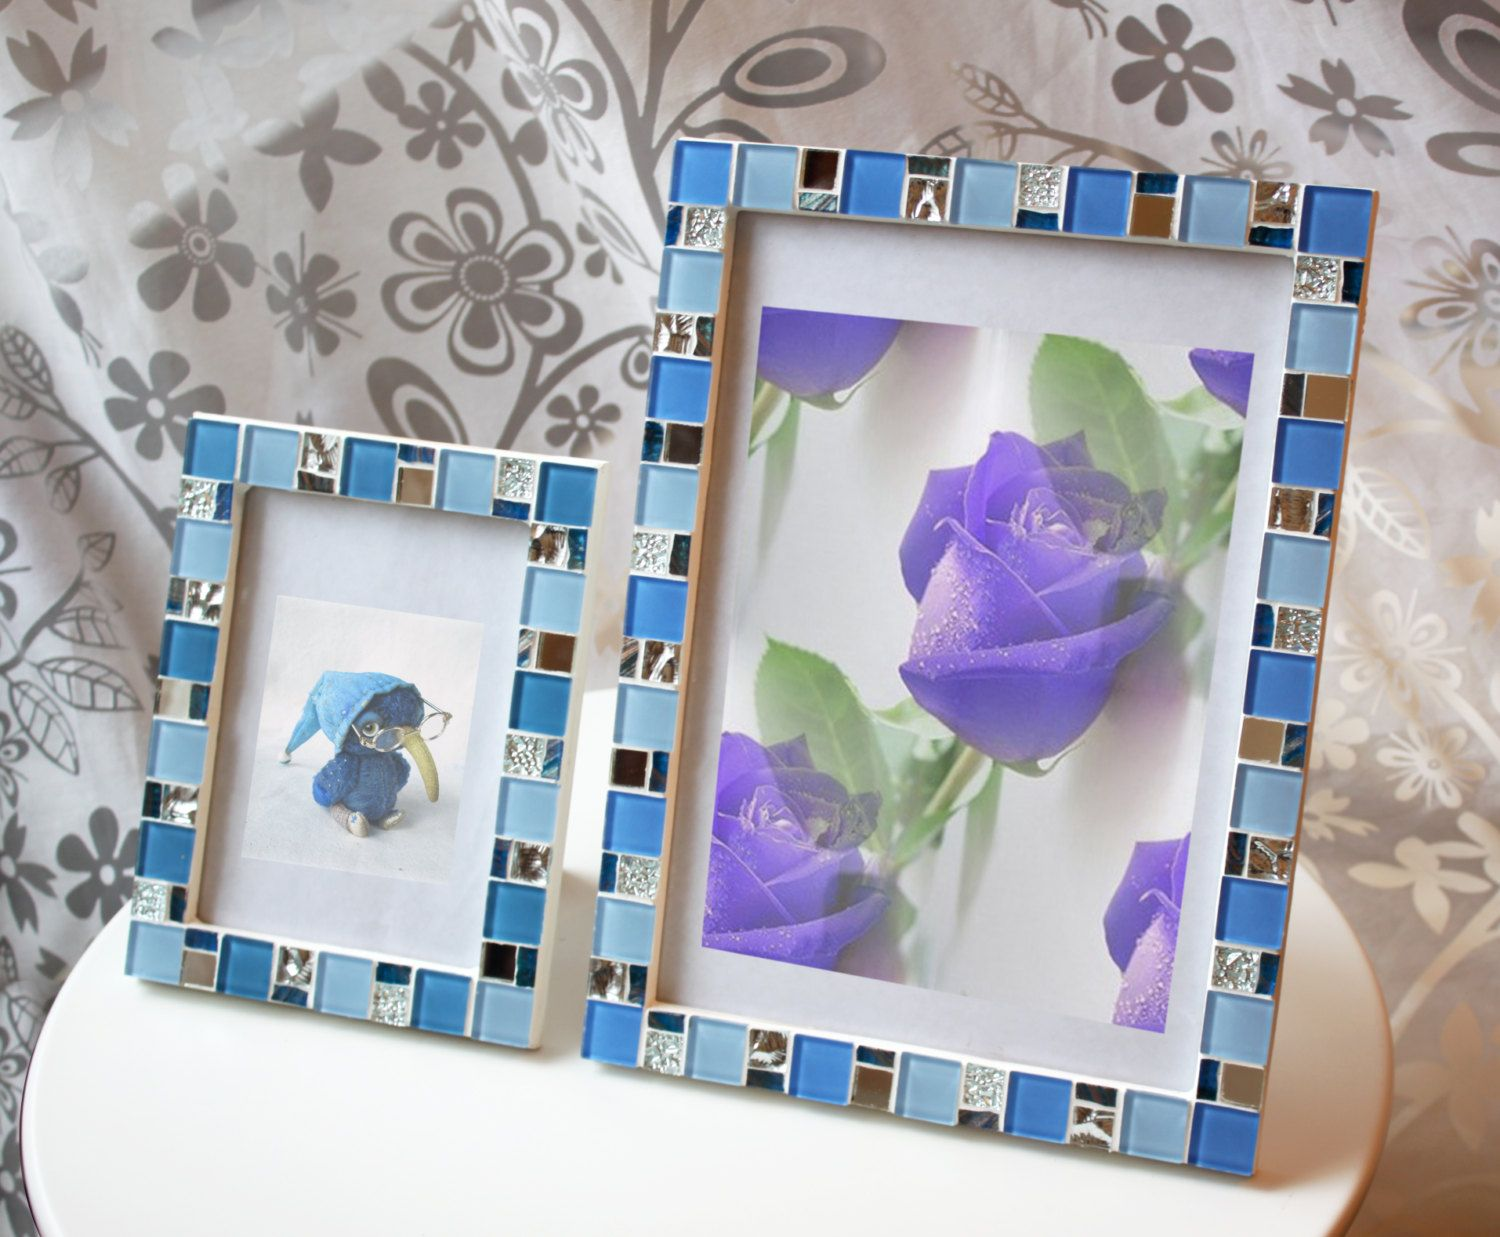 Dorable Foto 5x7 Enmarca Mayor Ornamento - Ideas Personalizadas de ...